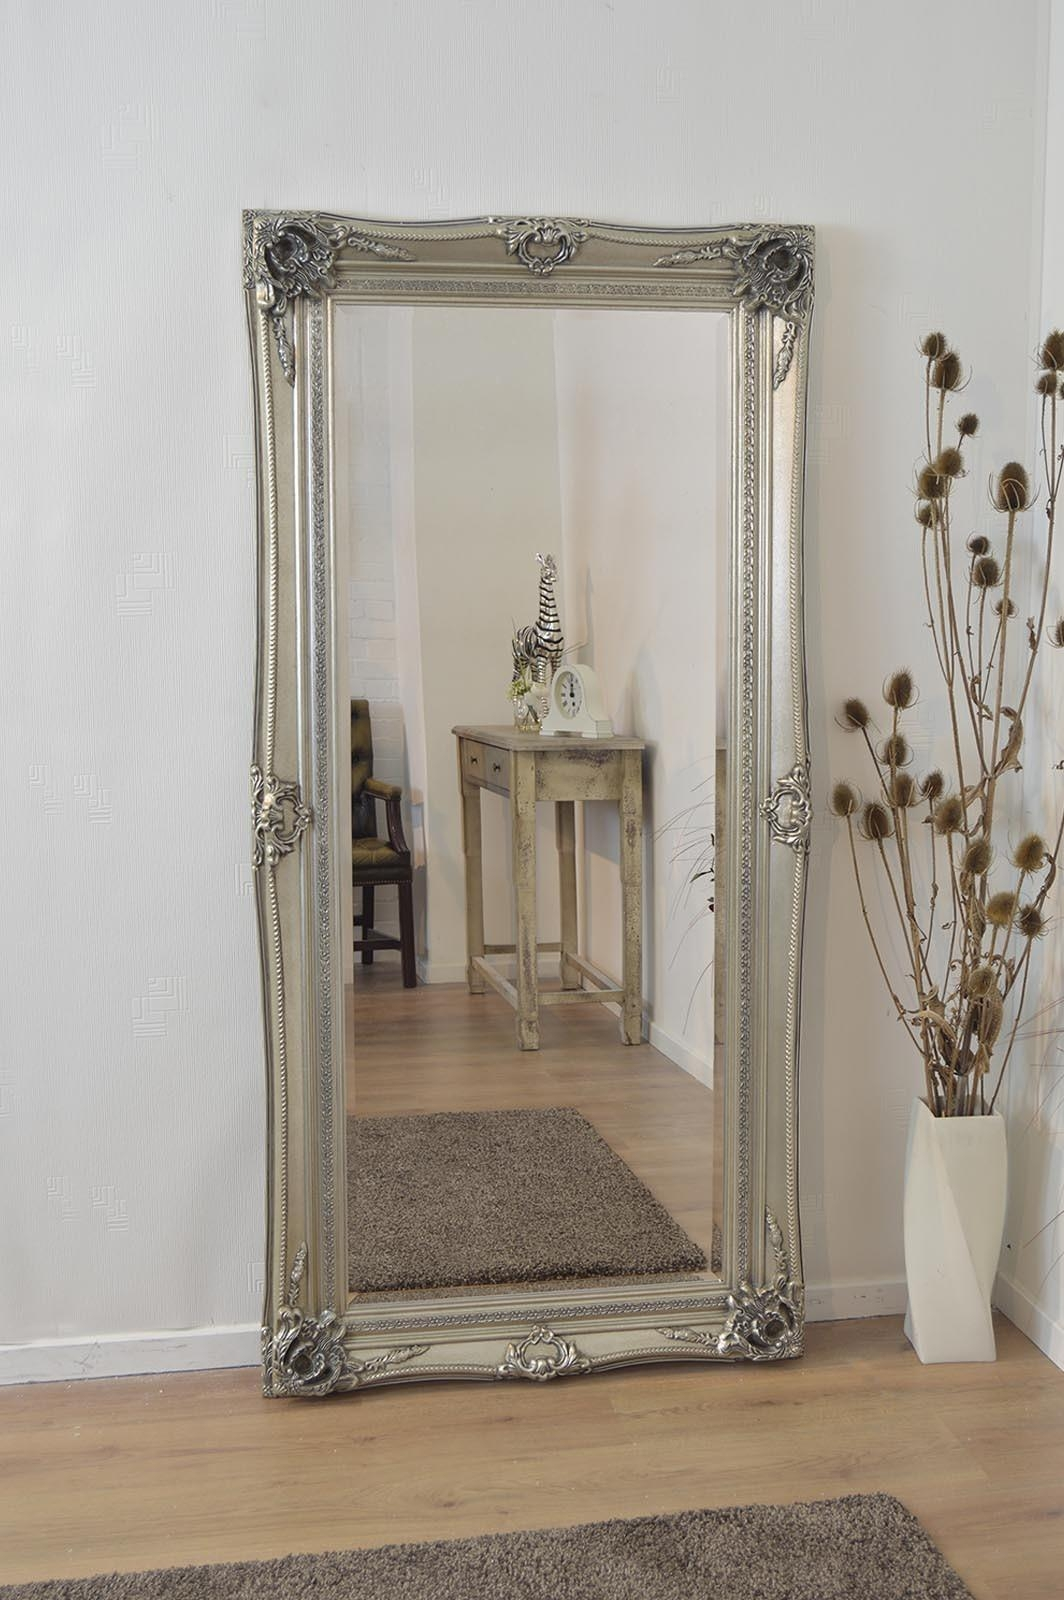 Large Antique Wall Mirror Ornate Frame Antique Ornate Wall Mirrors With Vintage Large Mirrors (View 11 of 20)